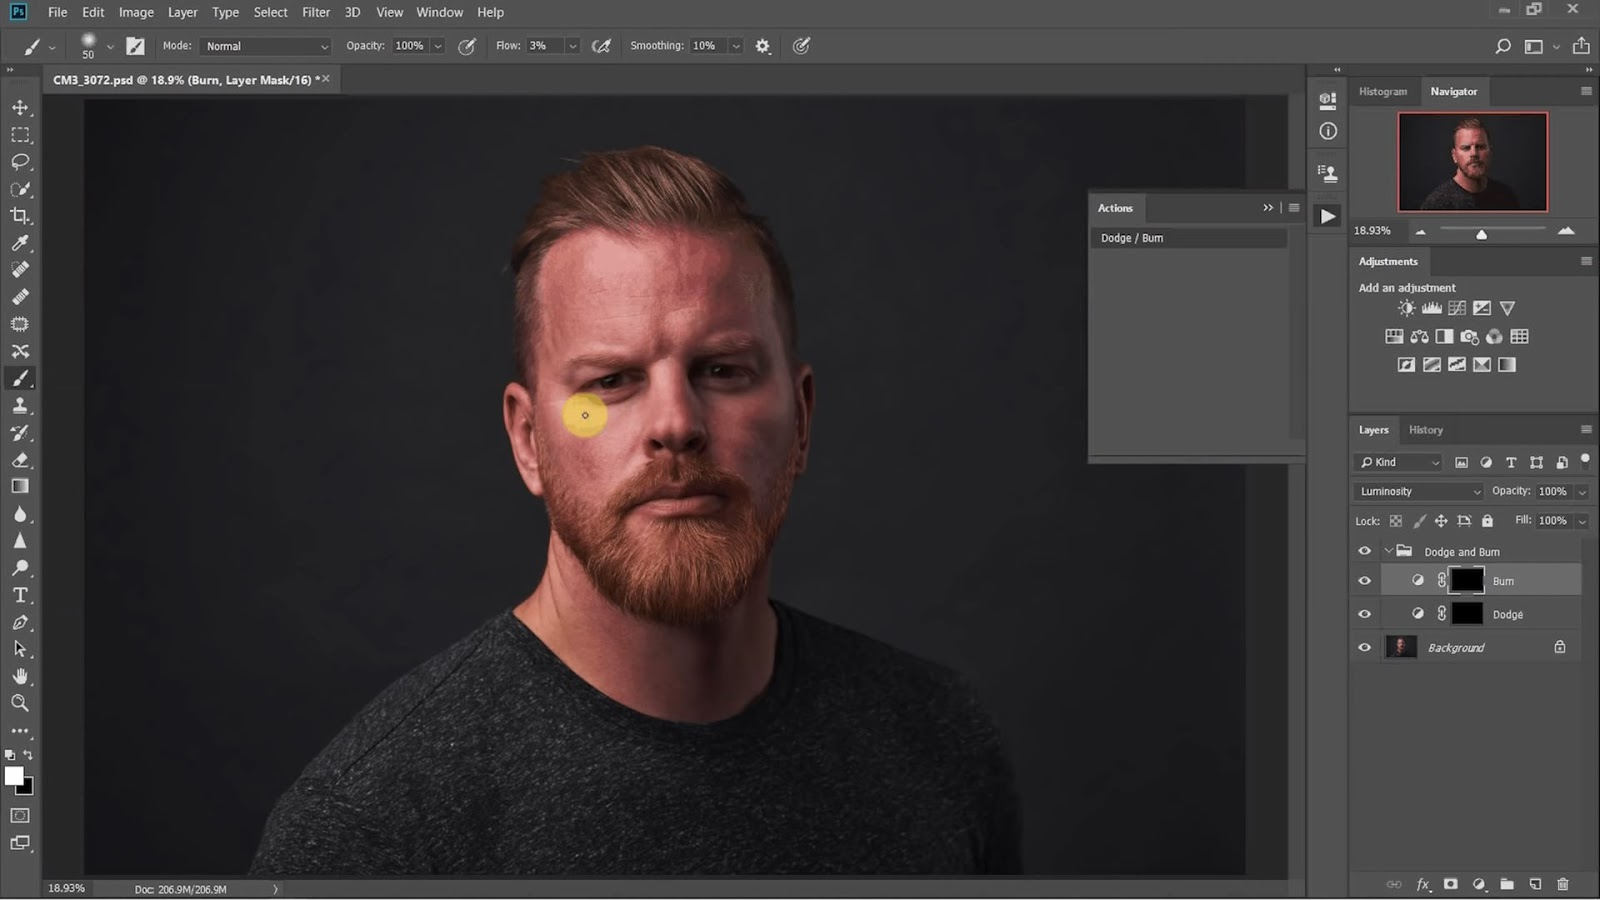 3 Easy Ways To Remove Bags From Under Eyes | Photoshop Tutorial